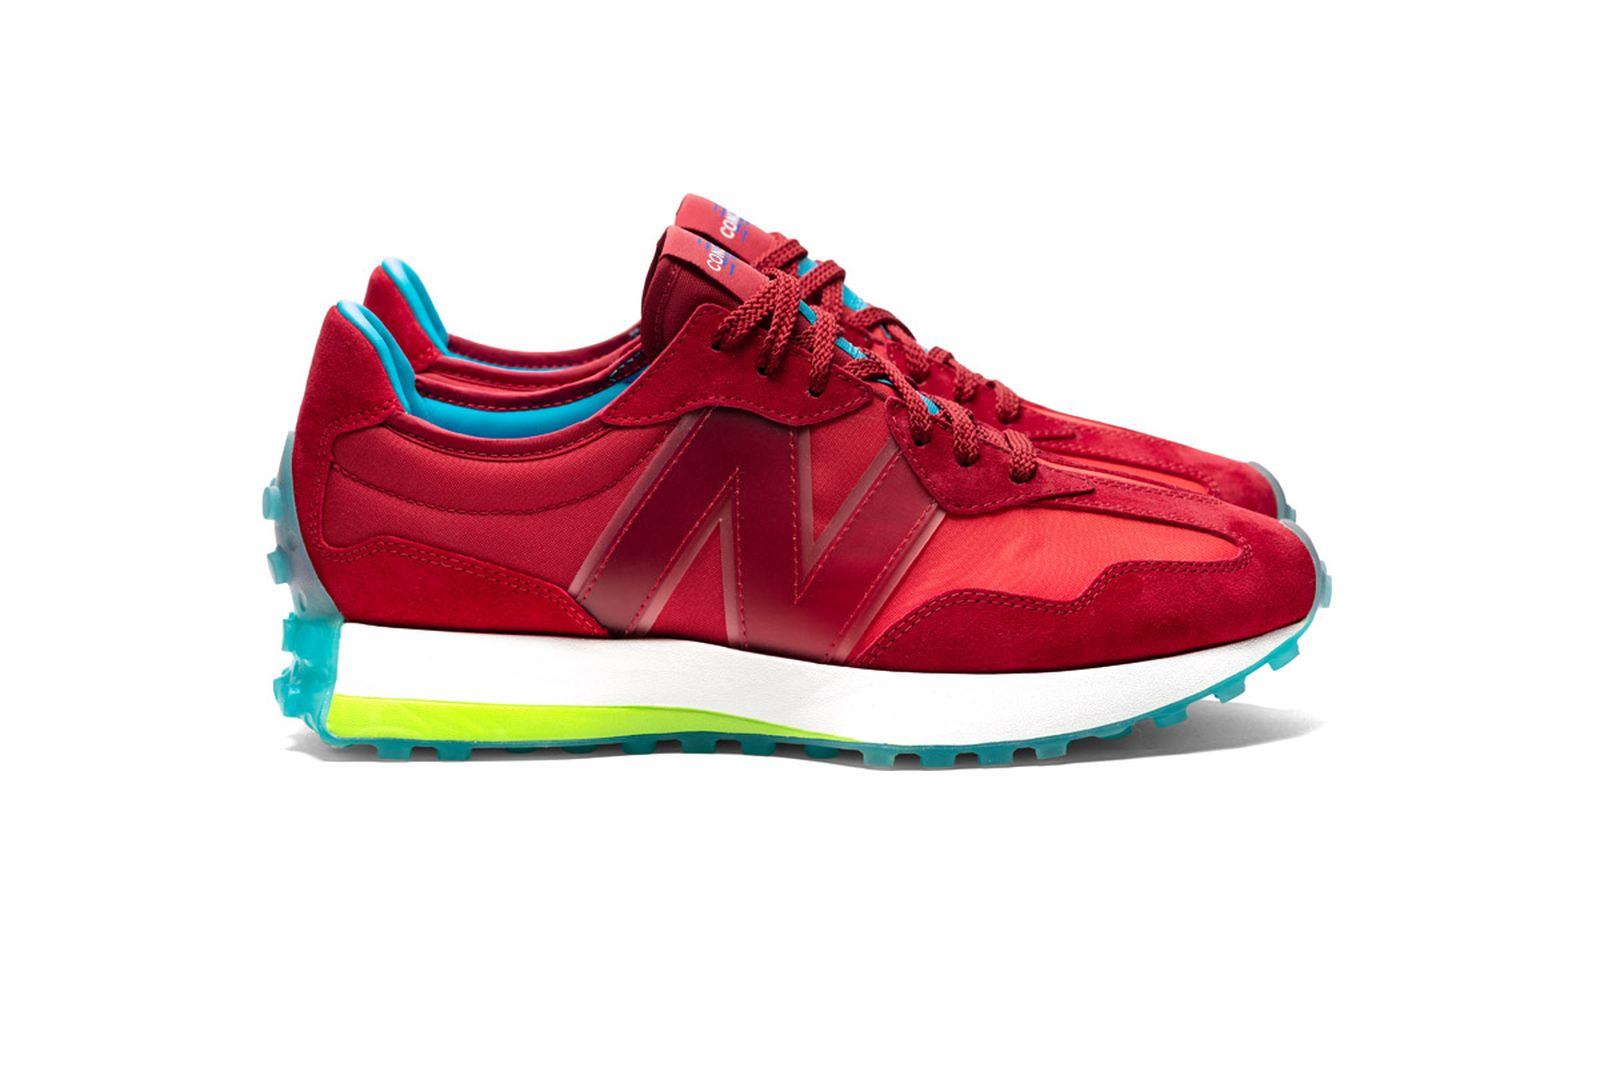 2new-balance-concepts-cranberry-product-shots